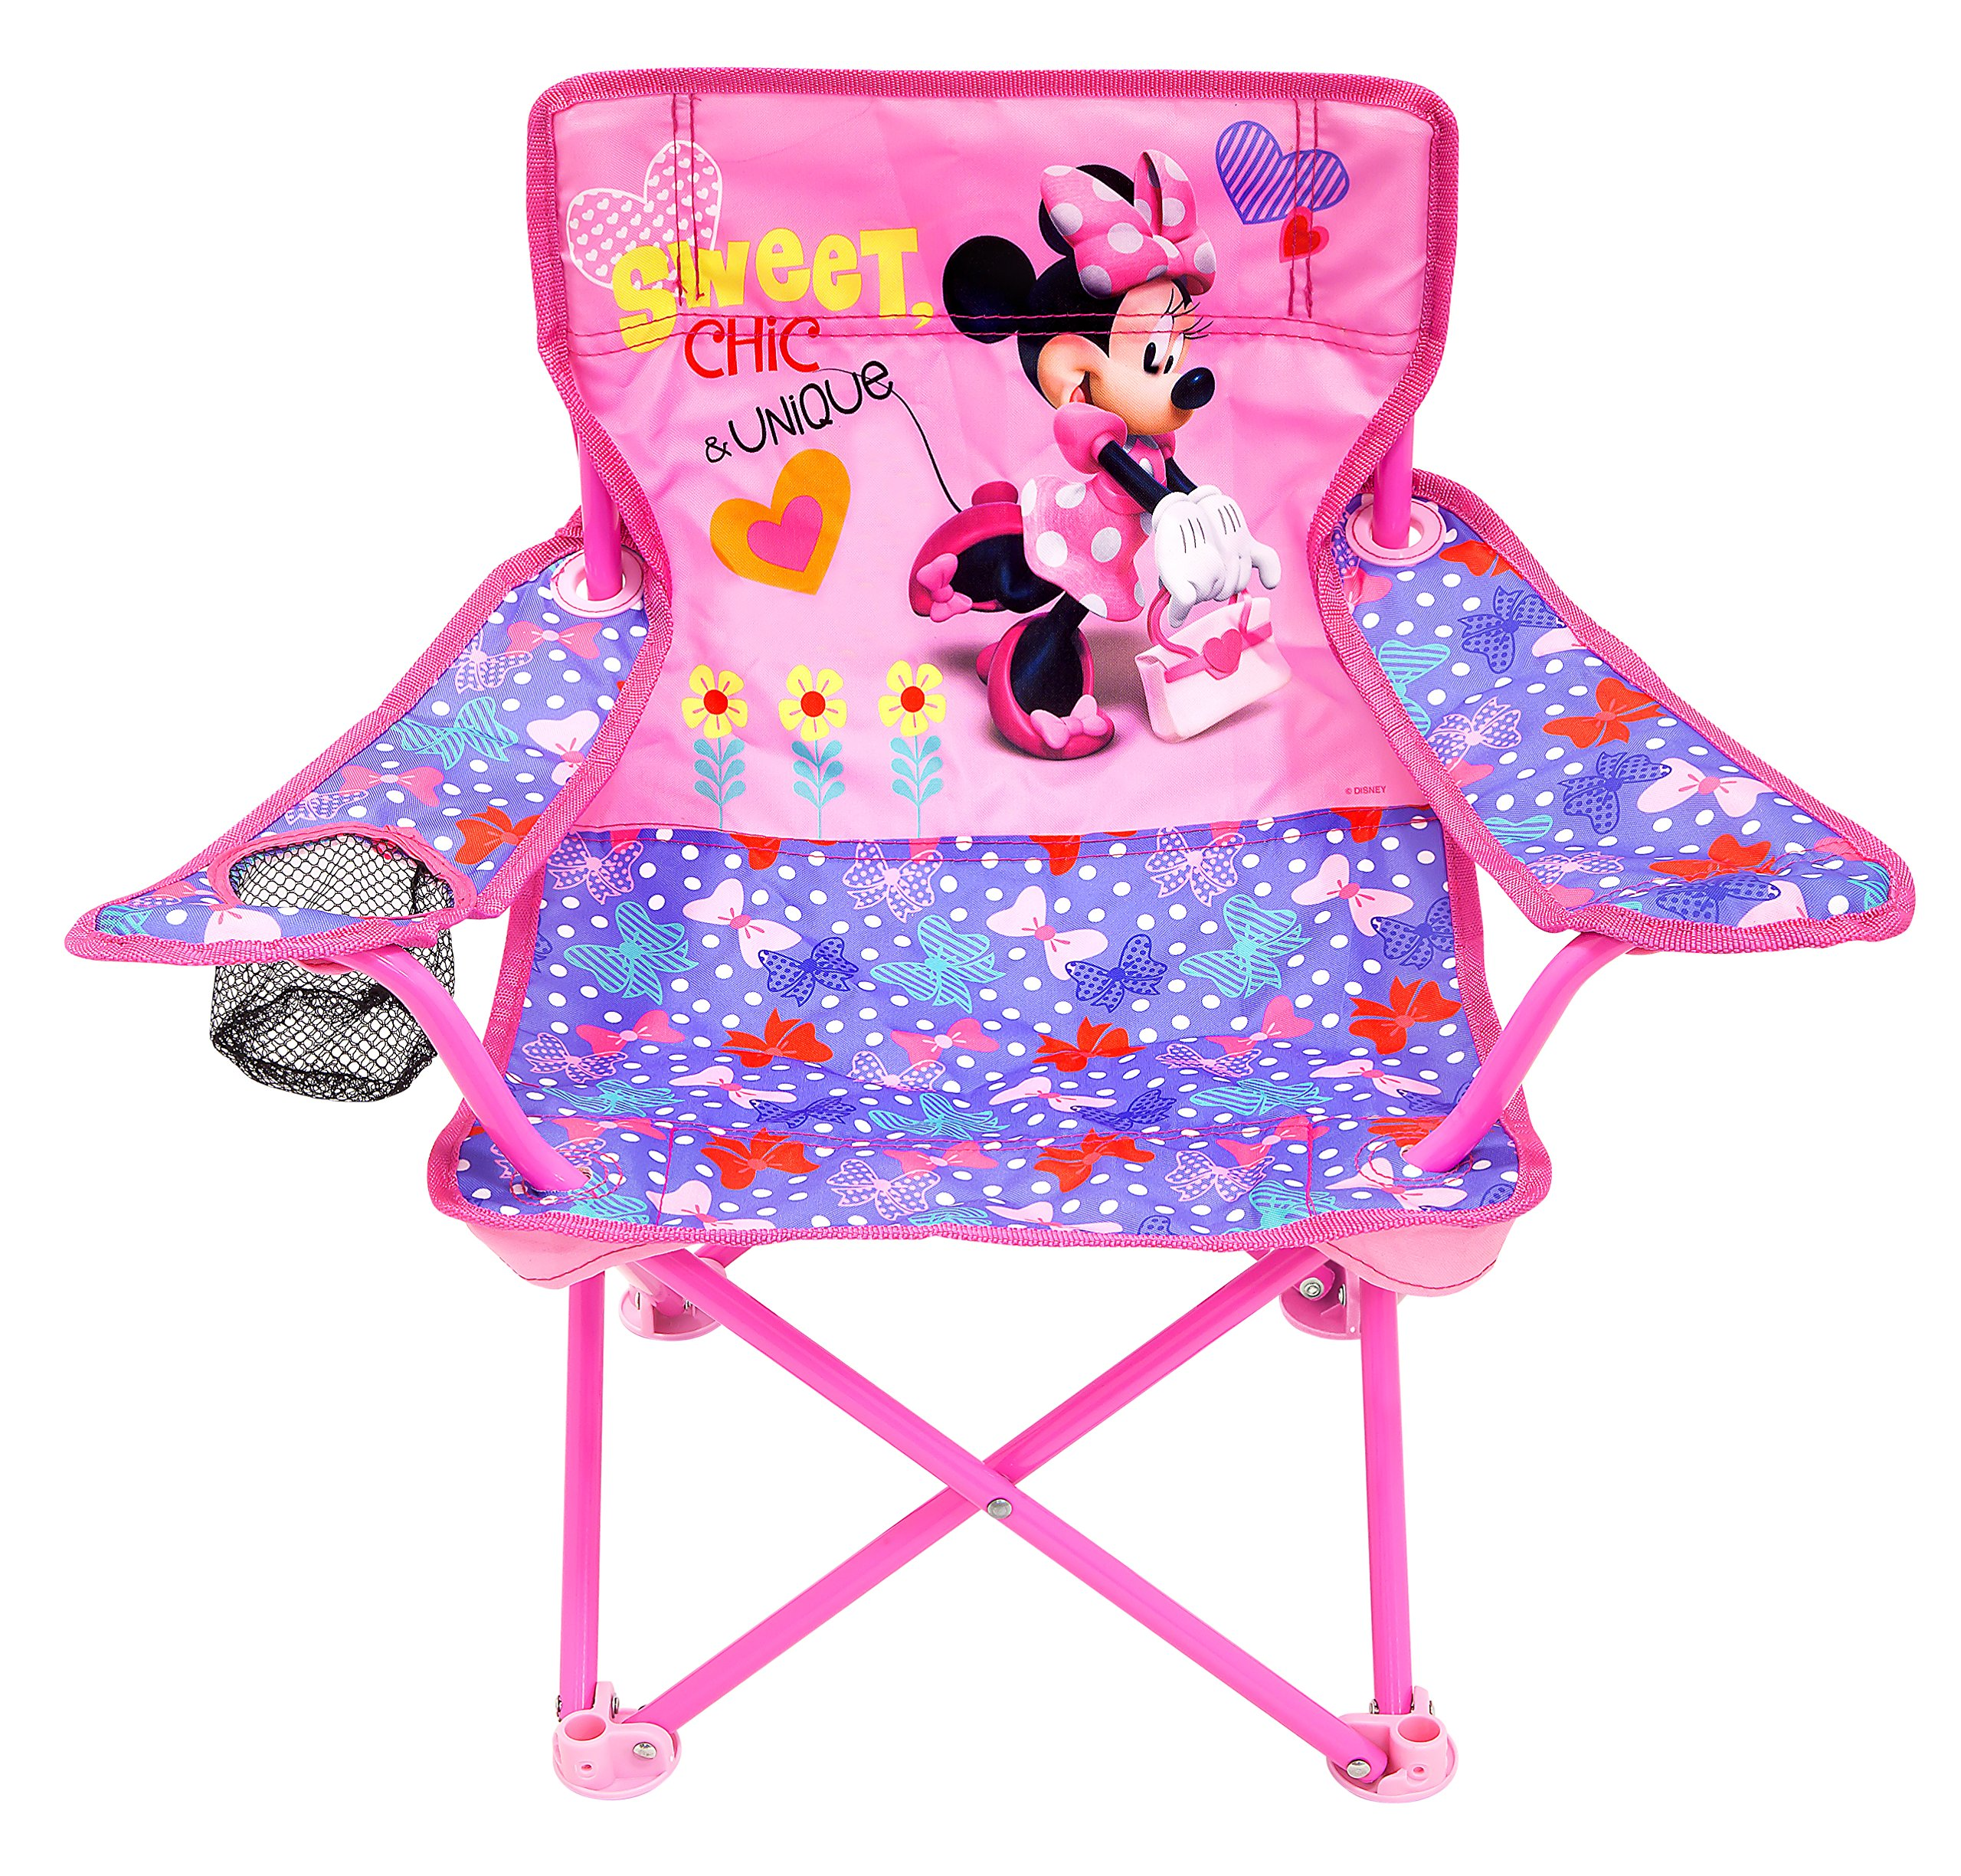 Kids Girls Portable Folding Chair Minnie Mouse Children Furniture